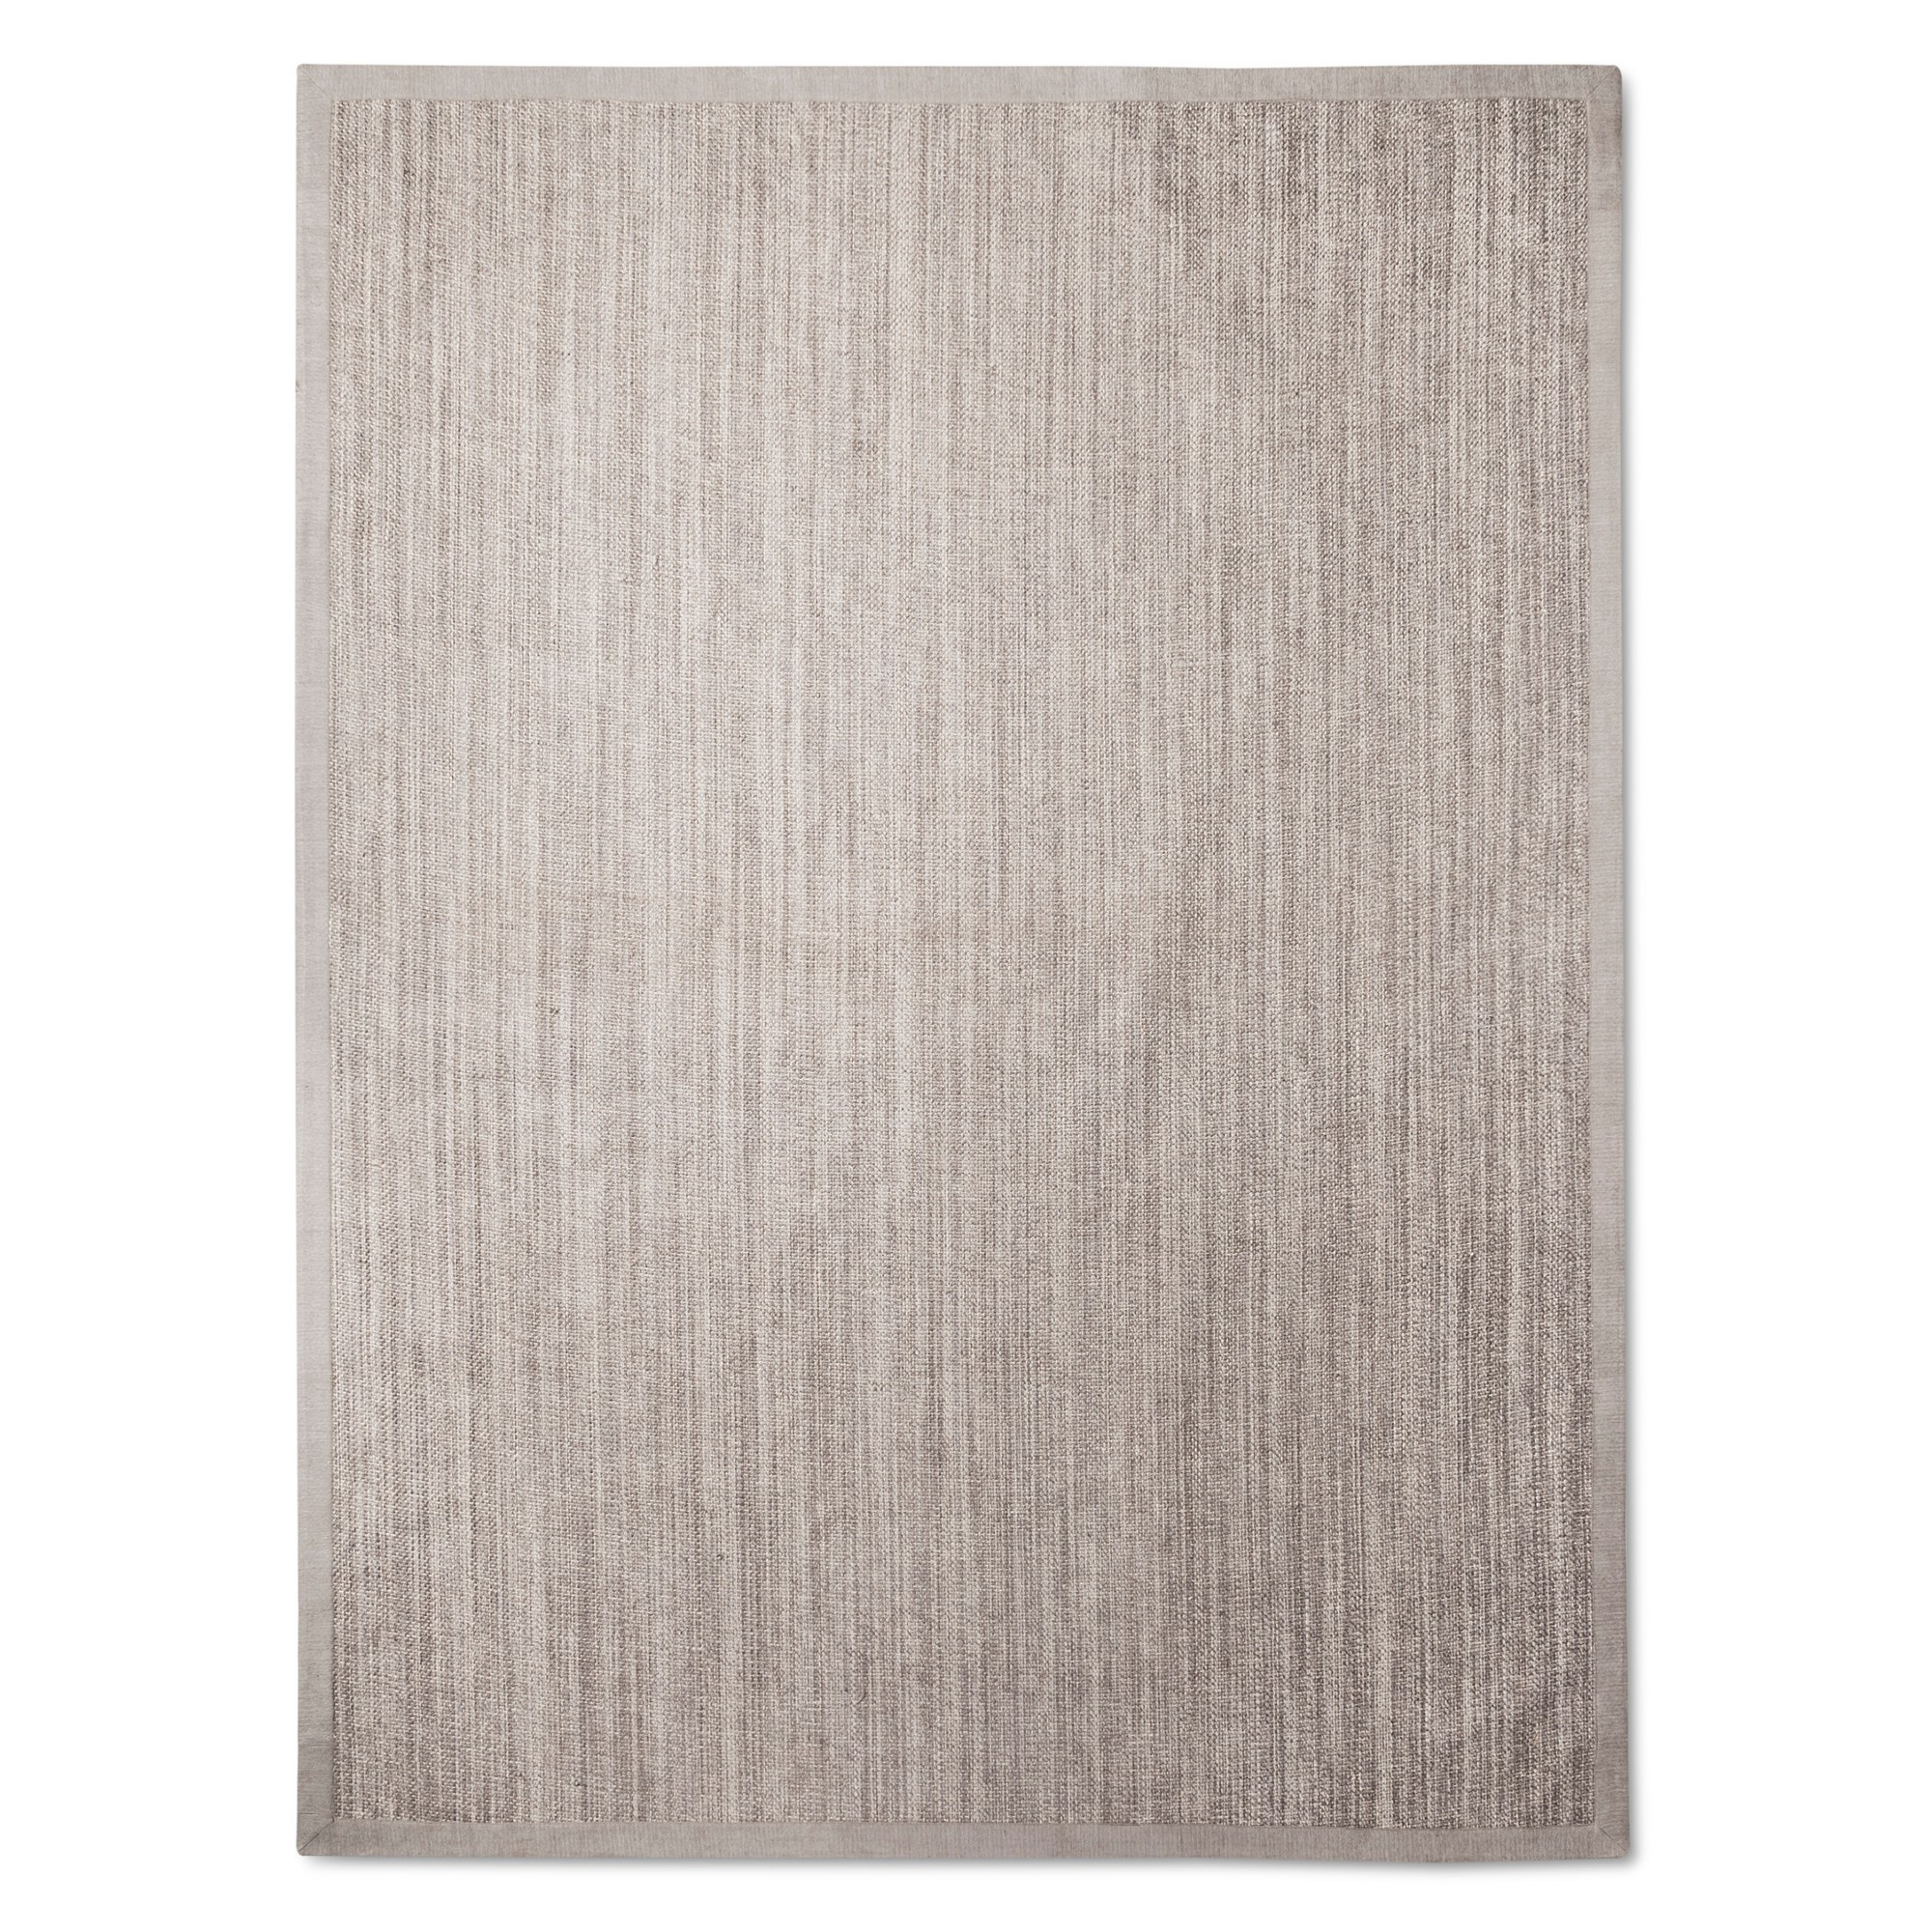 9 X12 Solid Woven Boarder Area Rug Light Gray Threshold Border Rugs Area Rugs Rugs